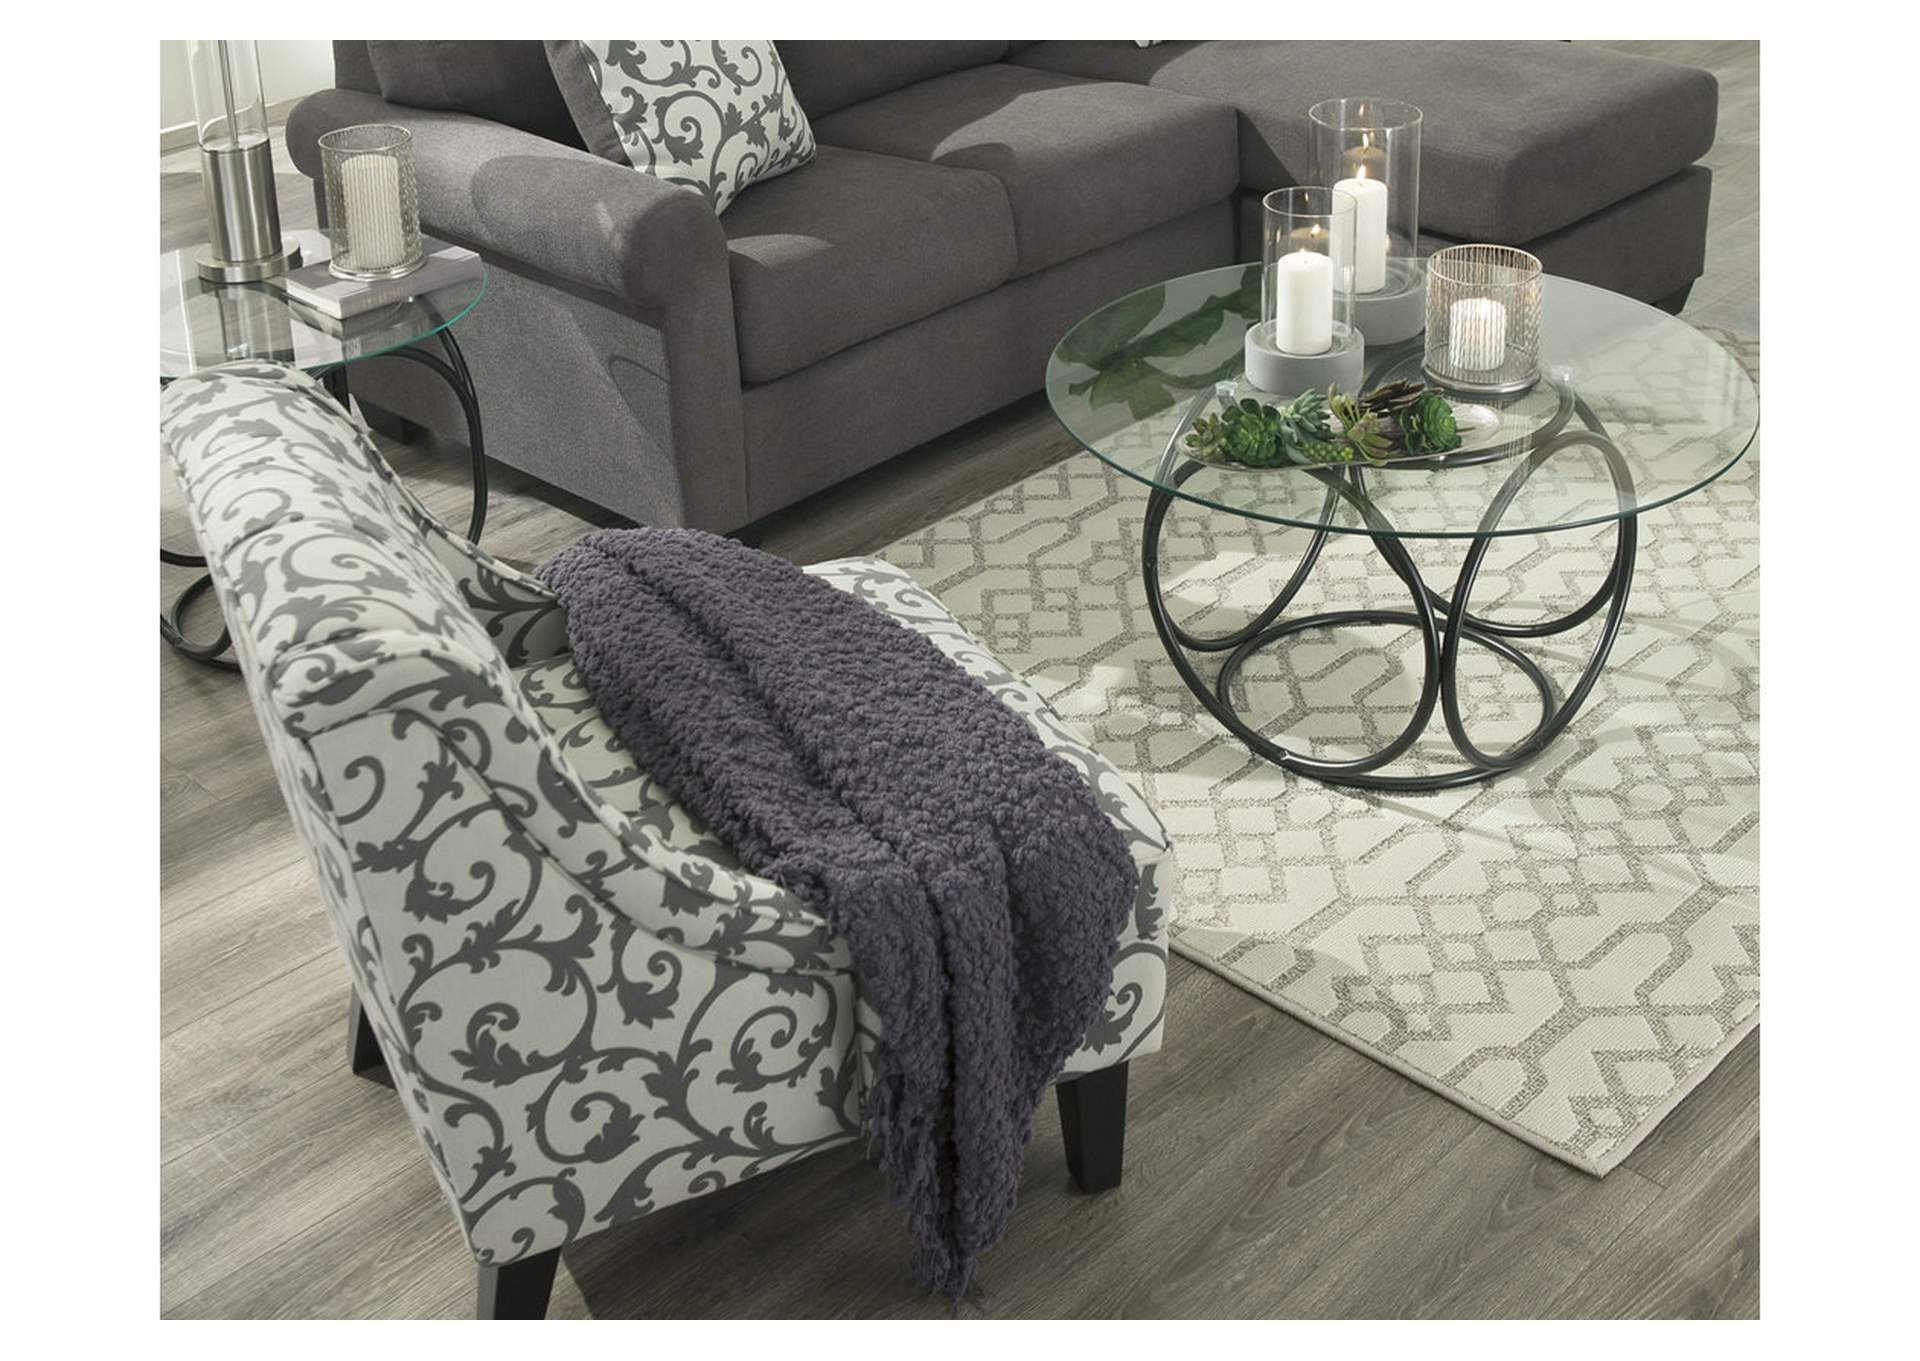 Coulee Natural Large Rug,Direct To Consumer Express